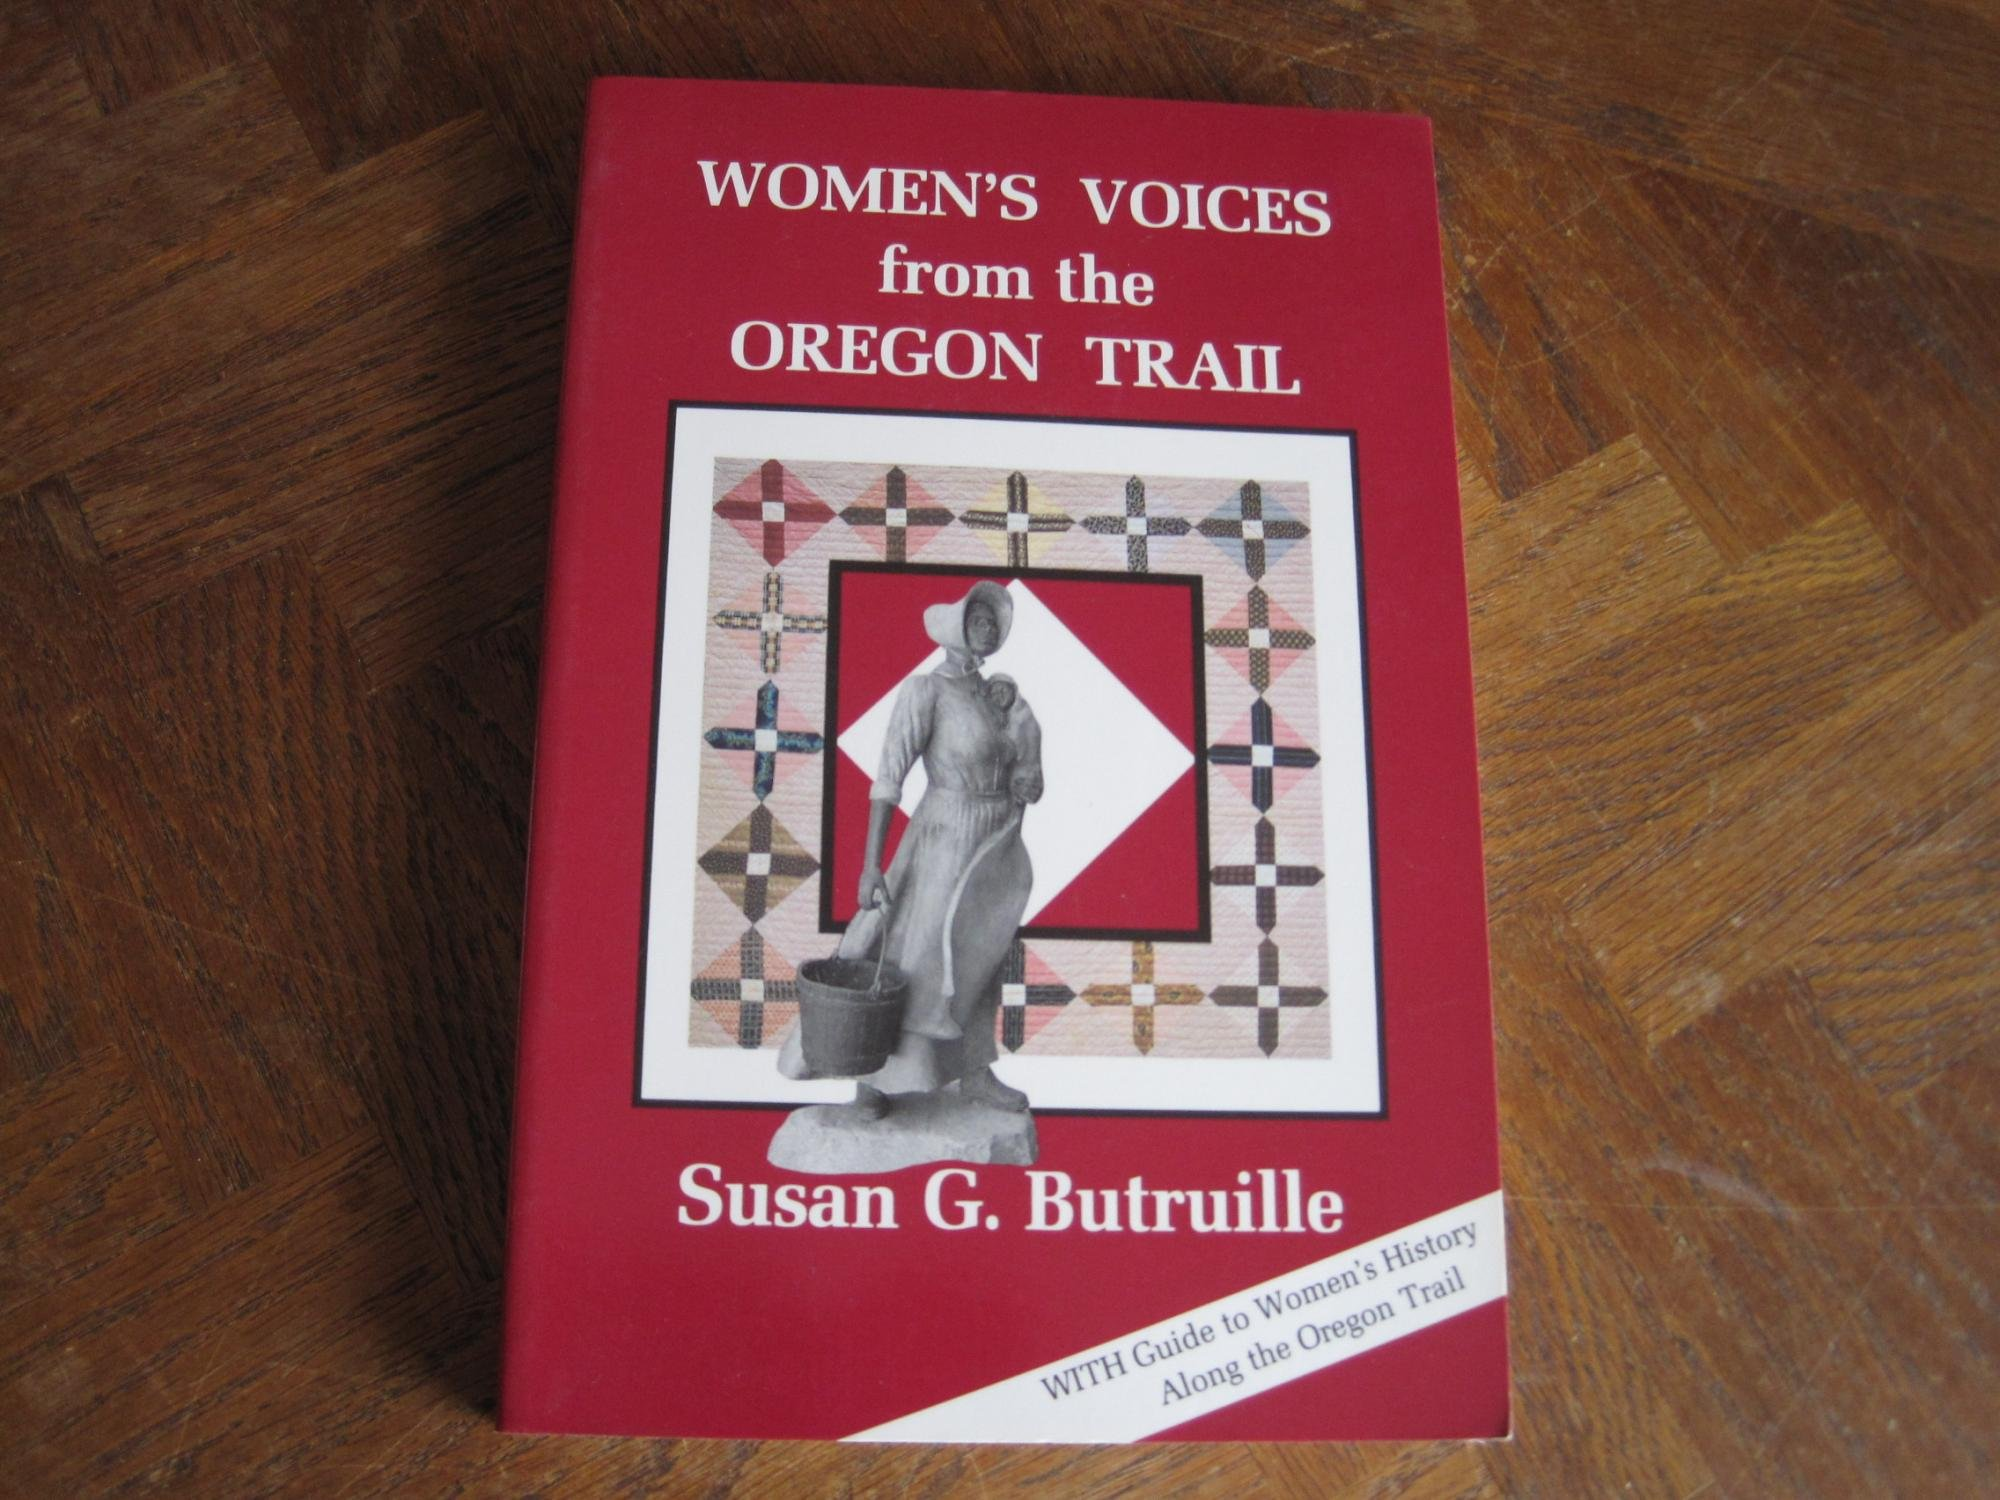 Women's voices from the Oregon Trail: The times that tried women's souls, and a guide to women's history along the Oregon Trail, Butruille, Susan G